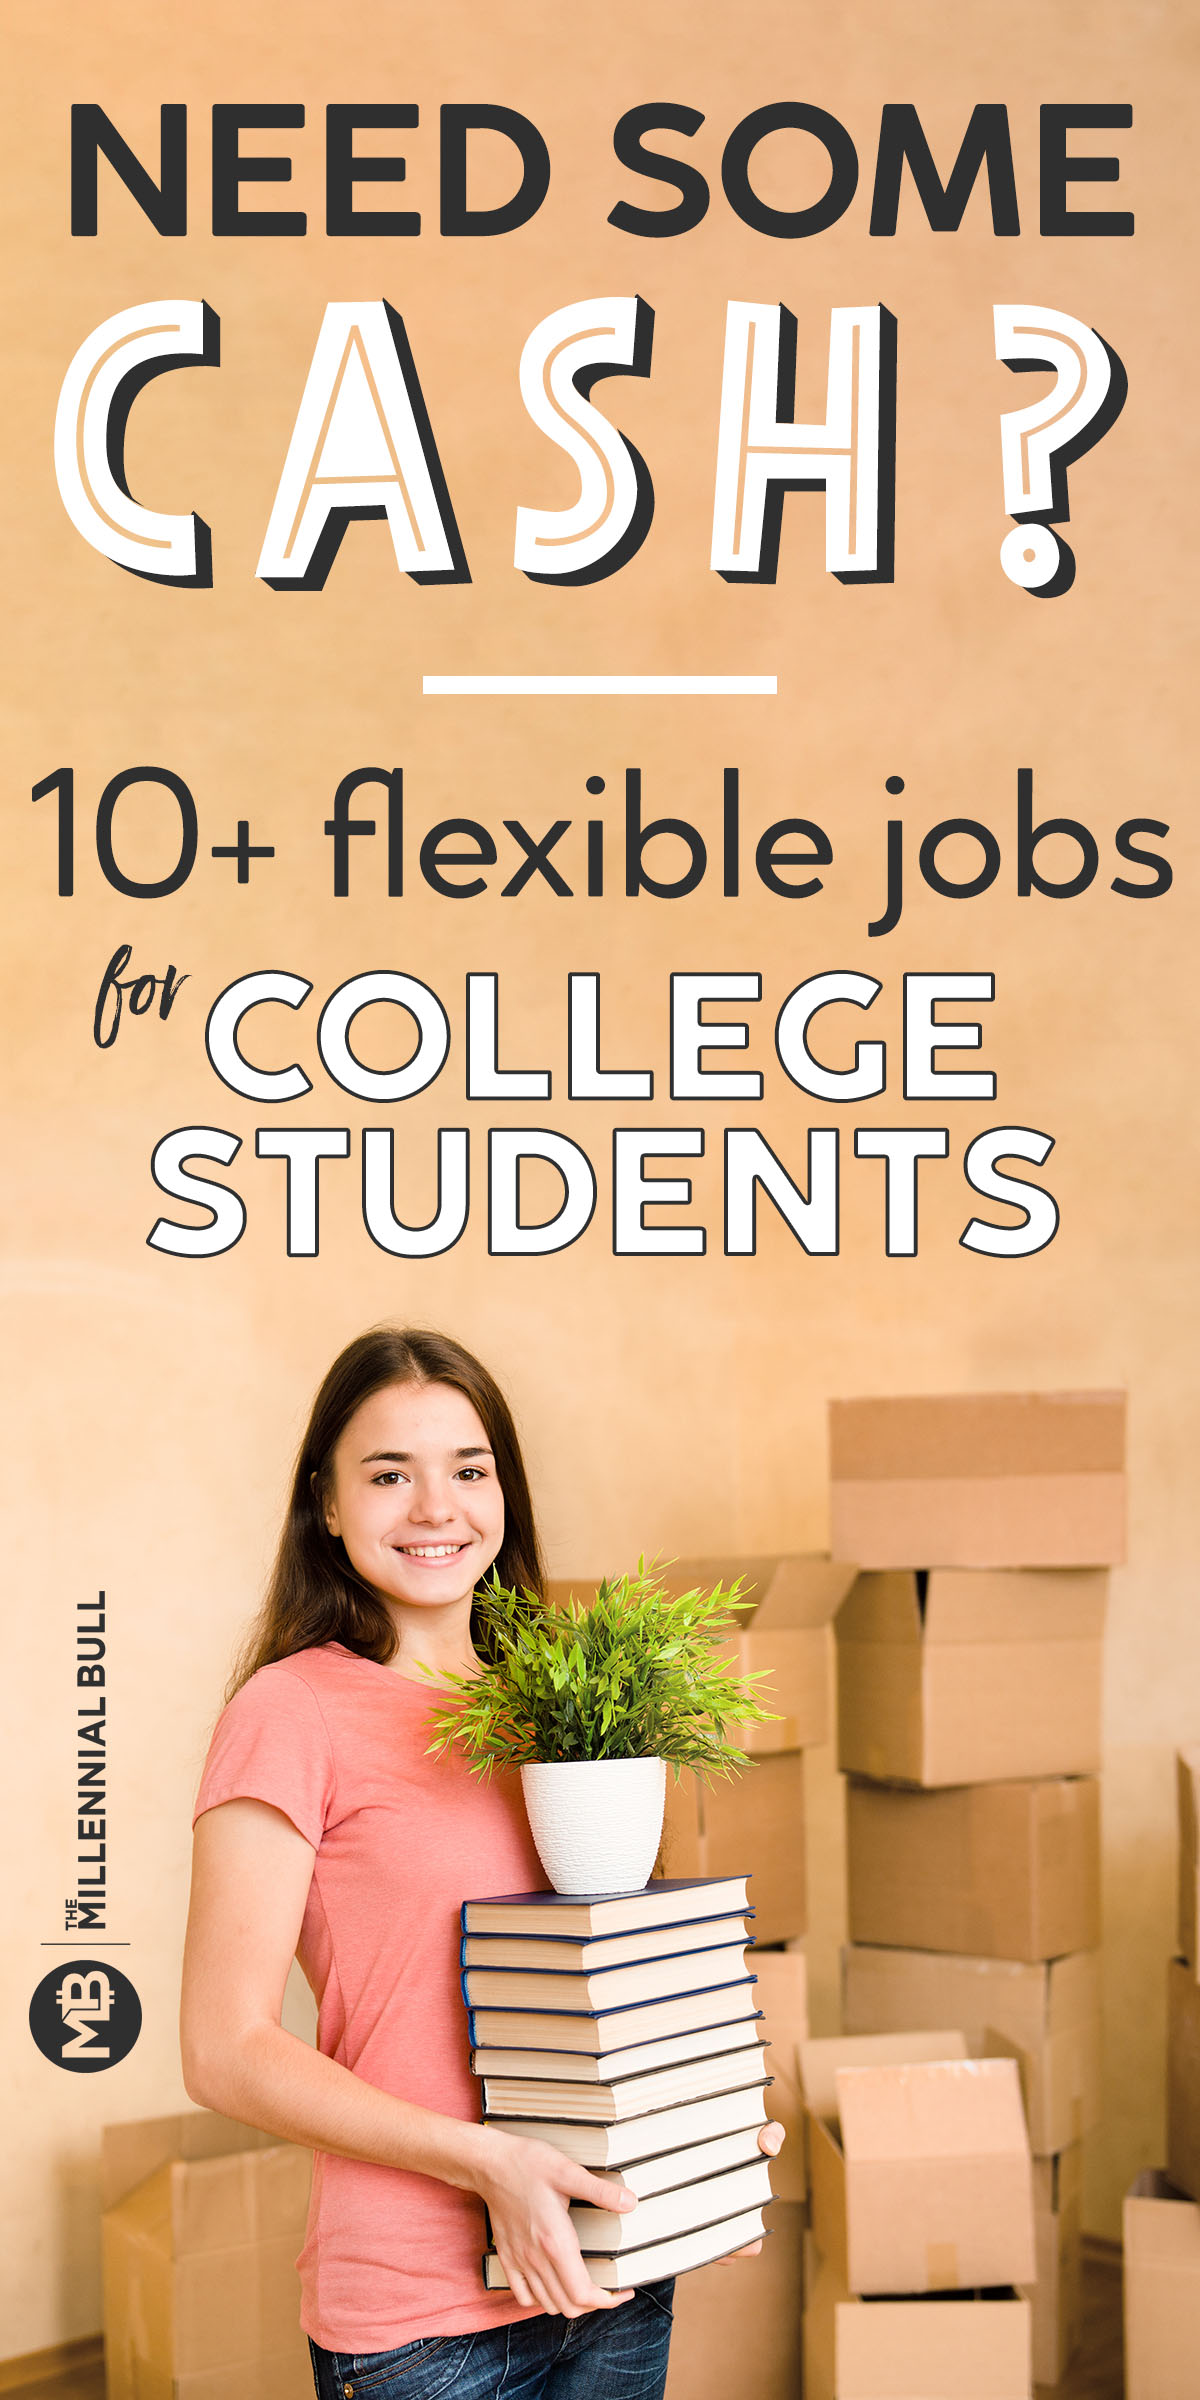 NEED SOME CASE flexible jobs for college students - 10+ Flexible Jobs For College Students